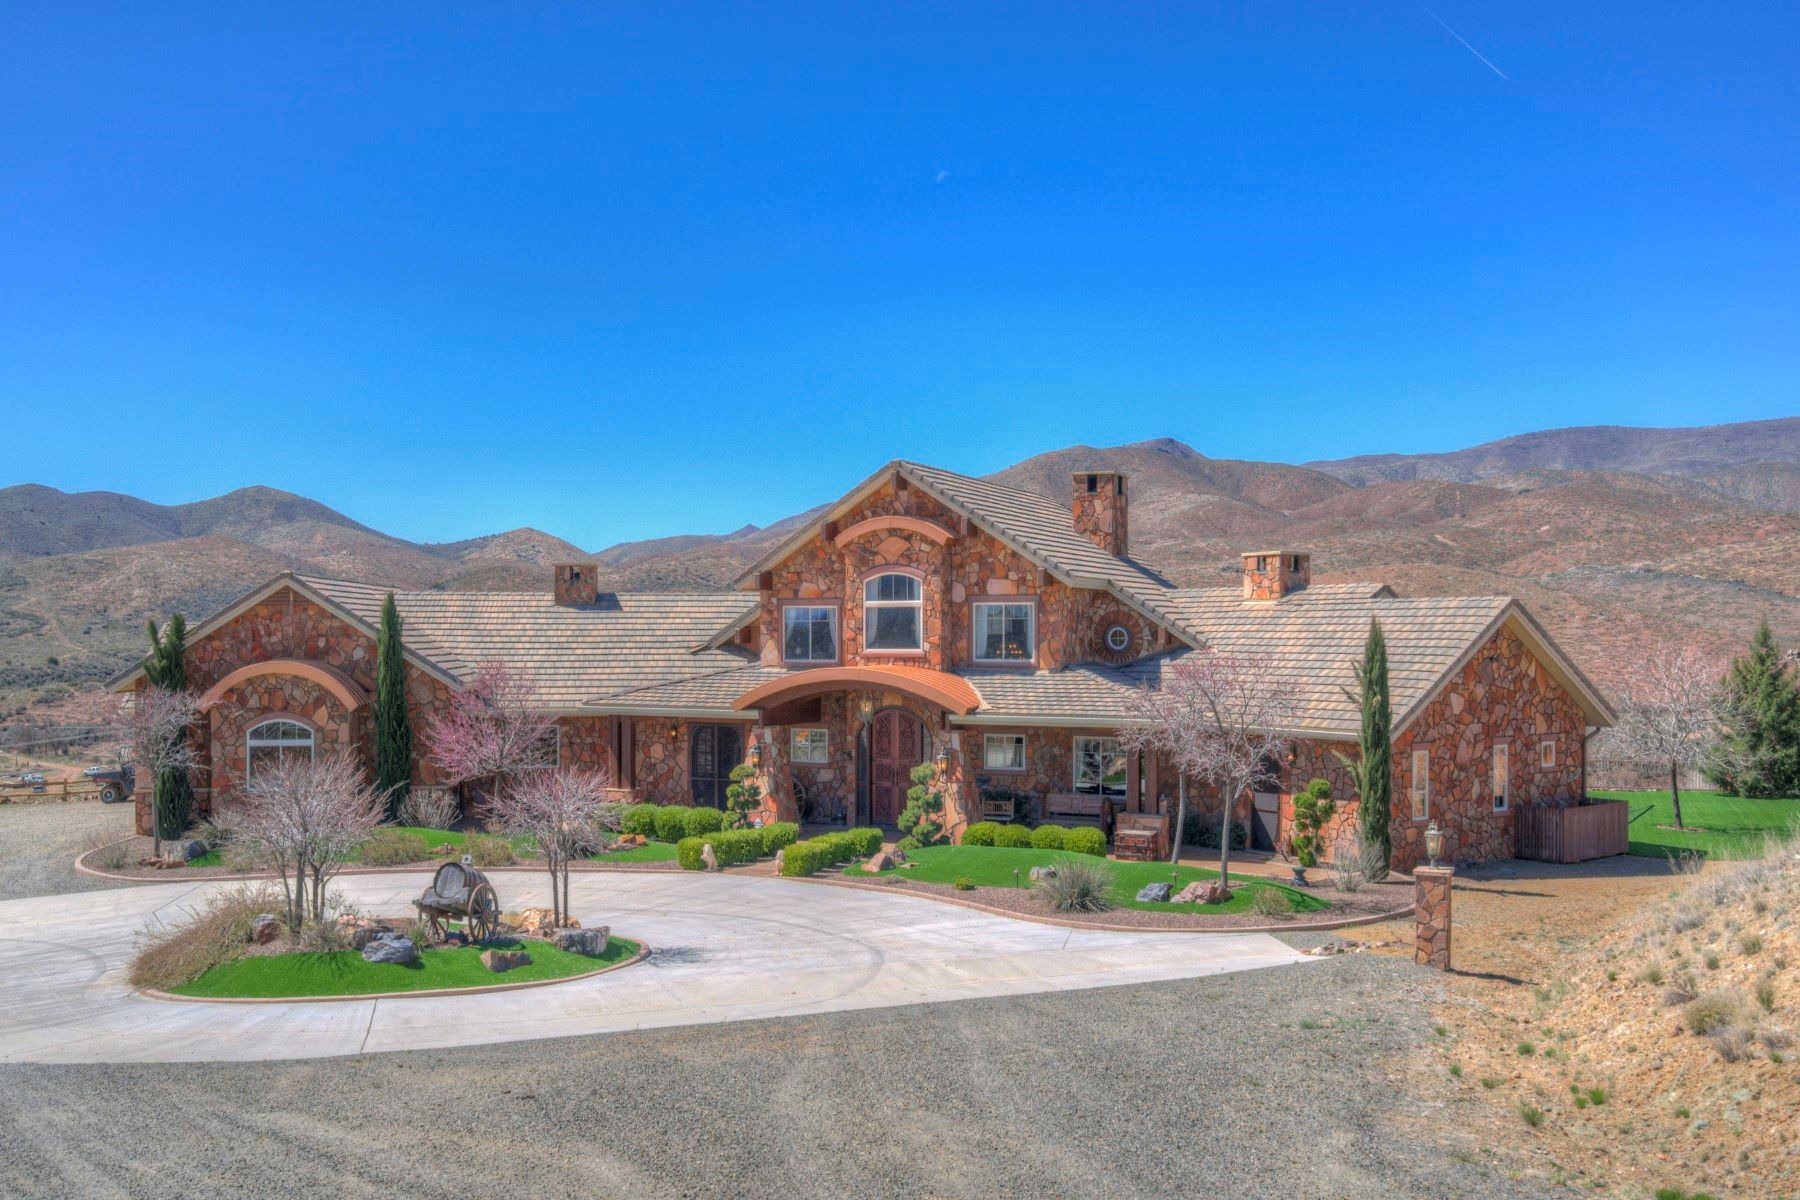 Single Family Homes for Active at Large Historic Ranch Sale 8960 S CUTTING EDGE TRL Mayer, Arizona 86333 United States